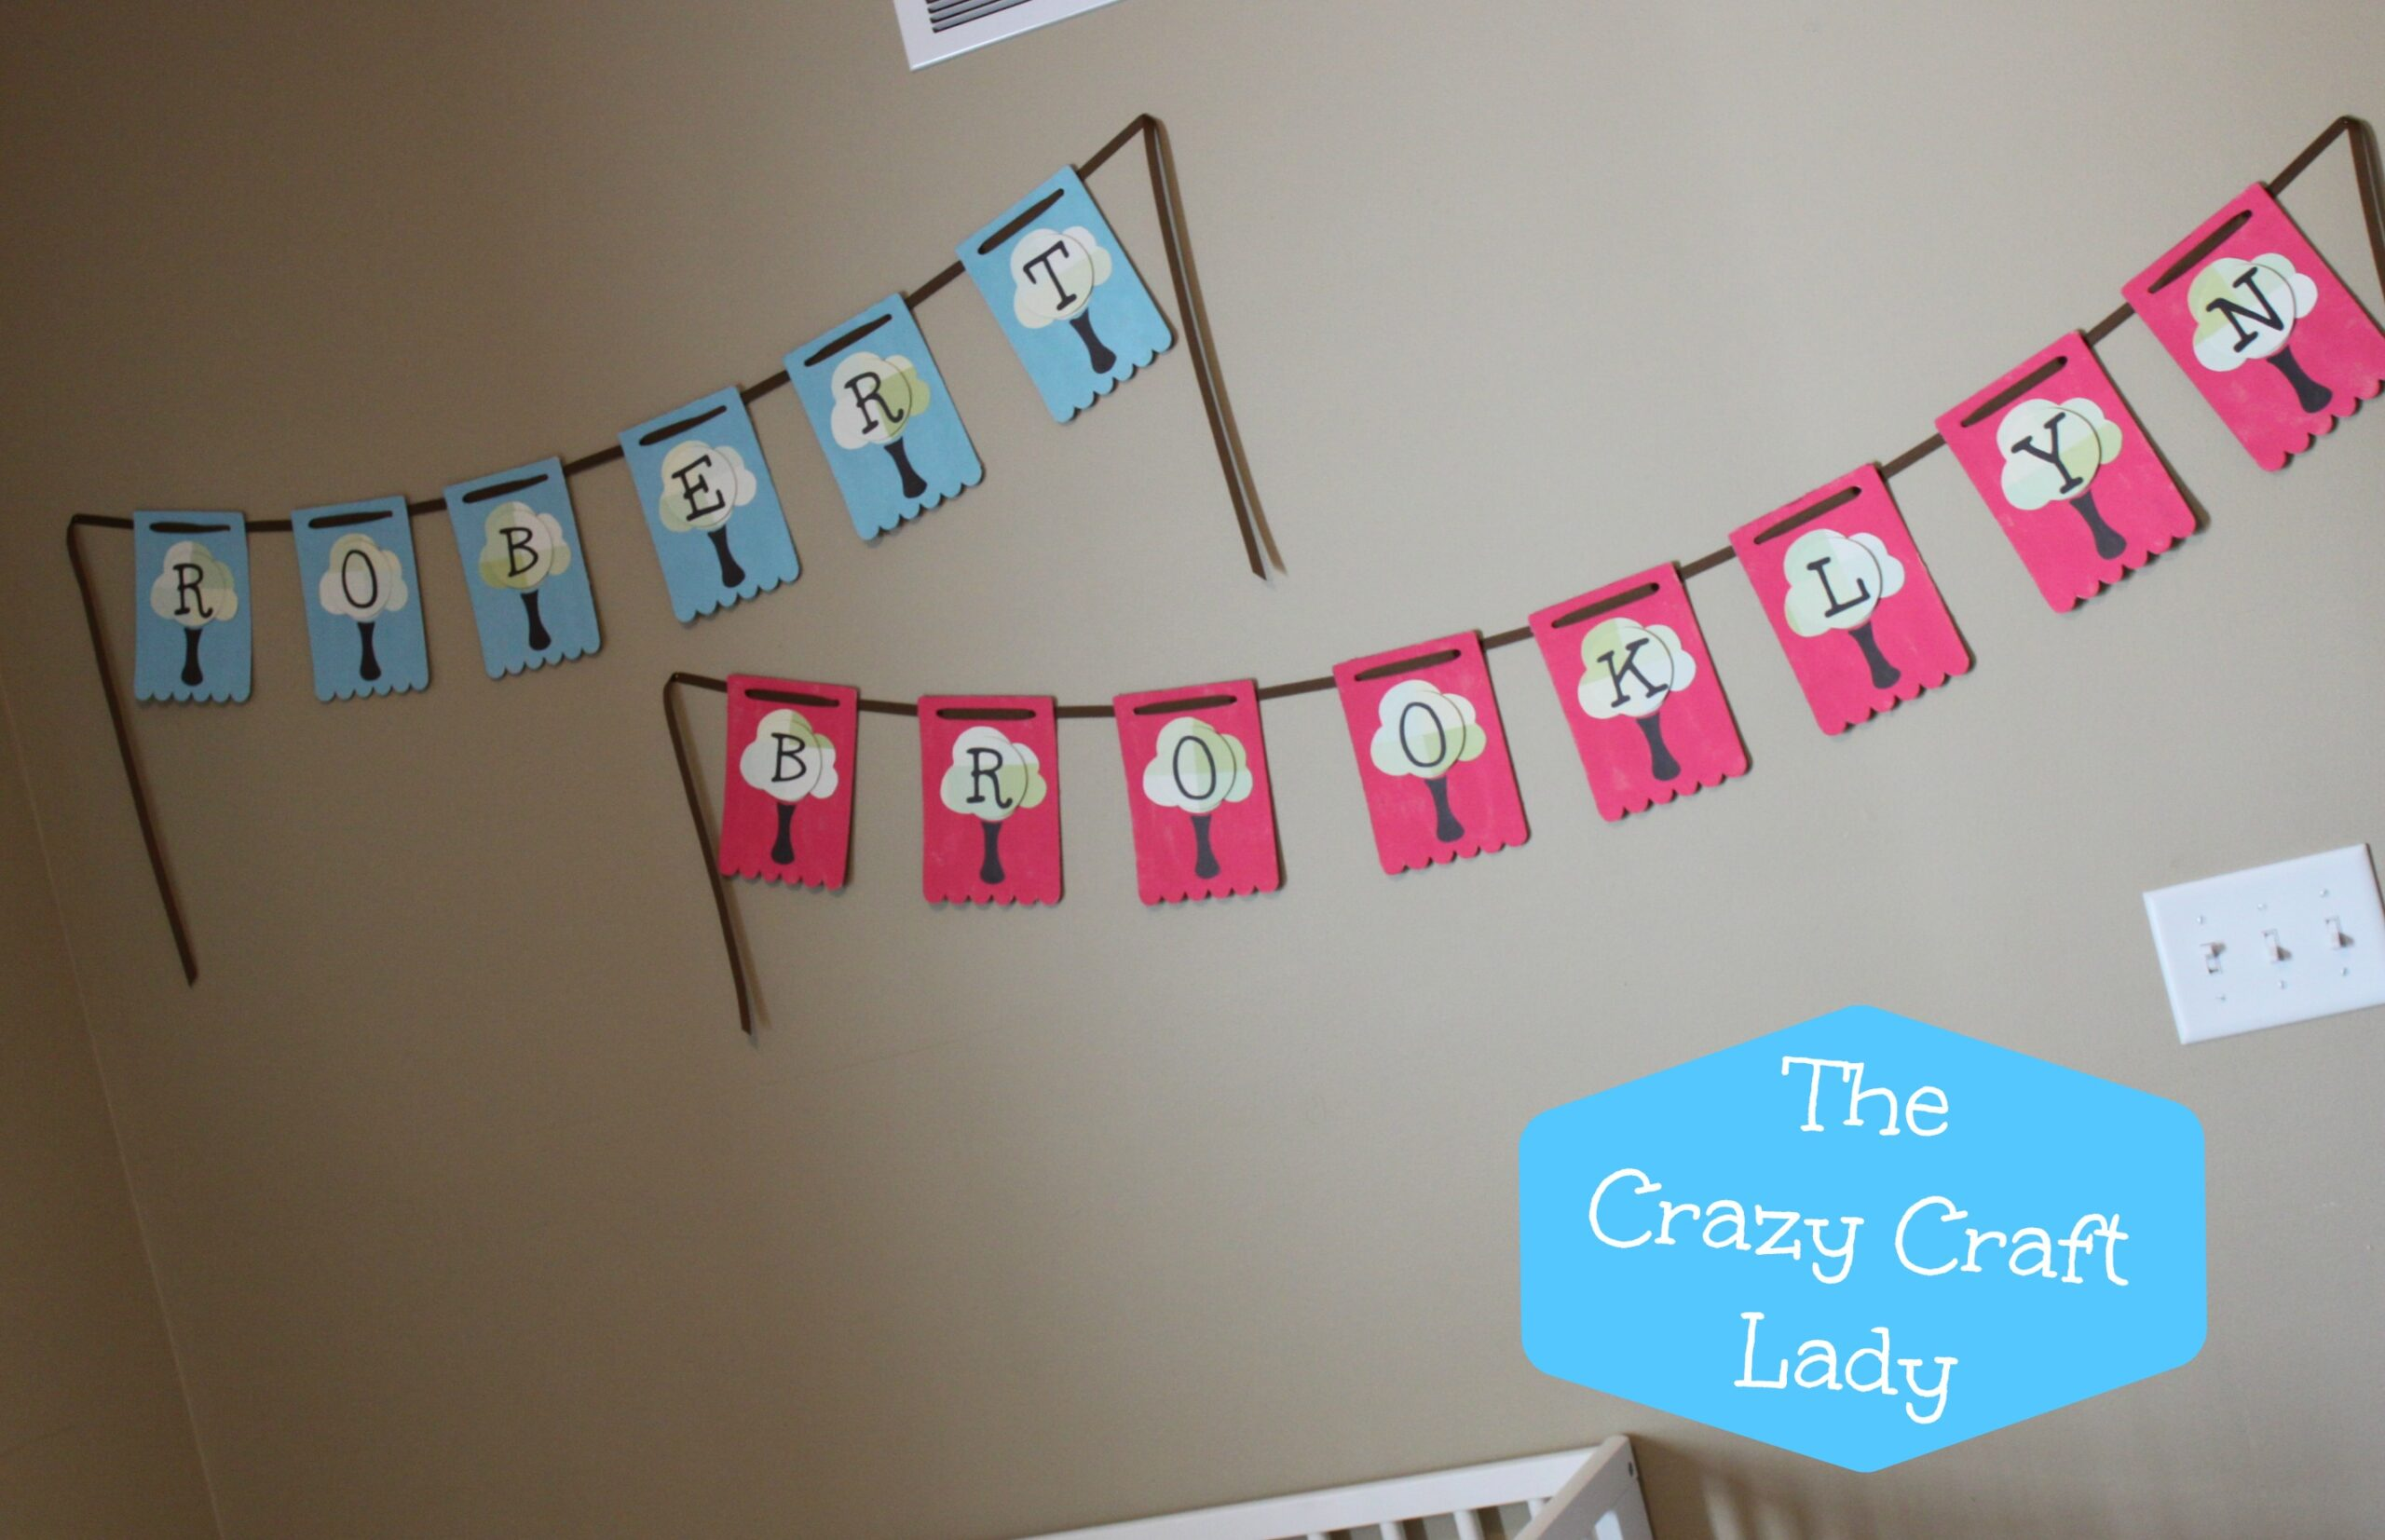 baby name banners - The Crazy Craft Lady